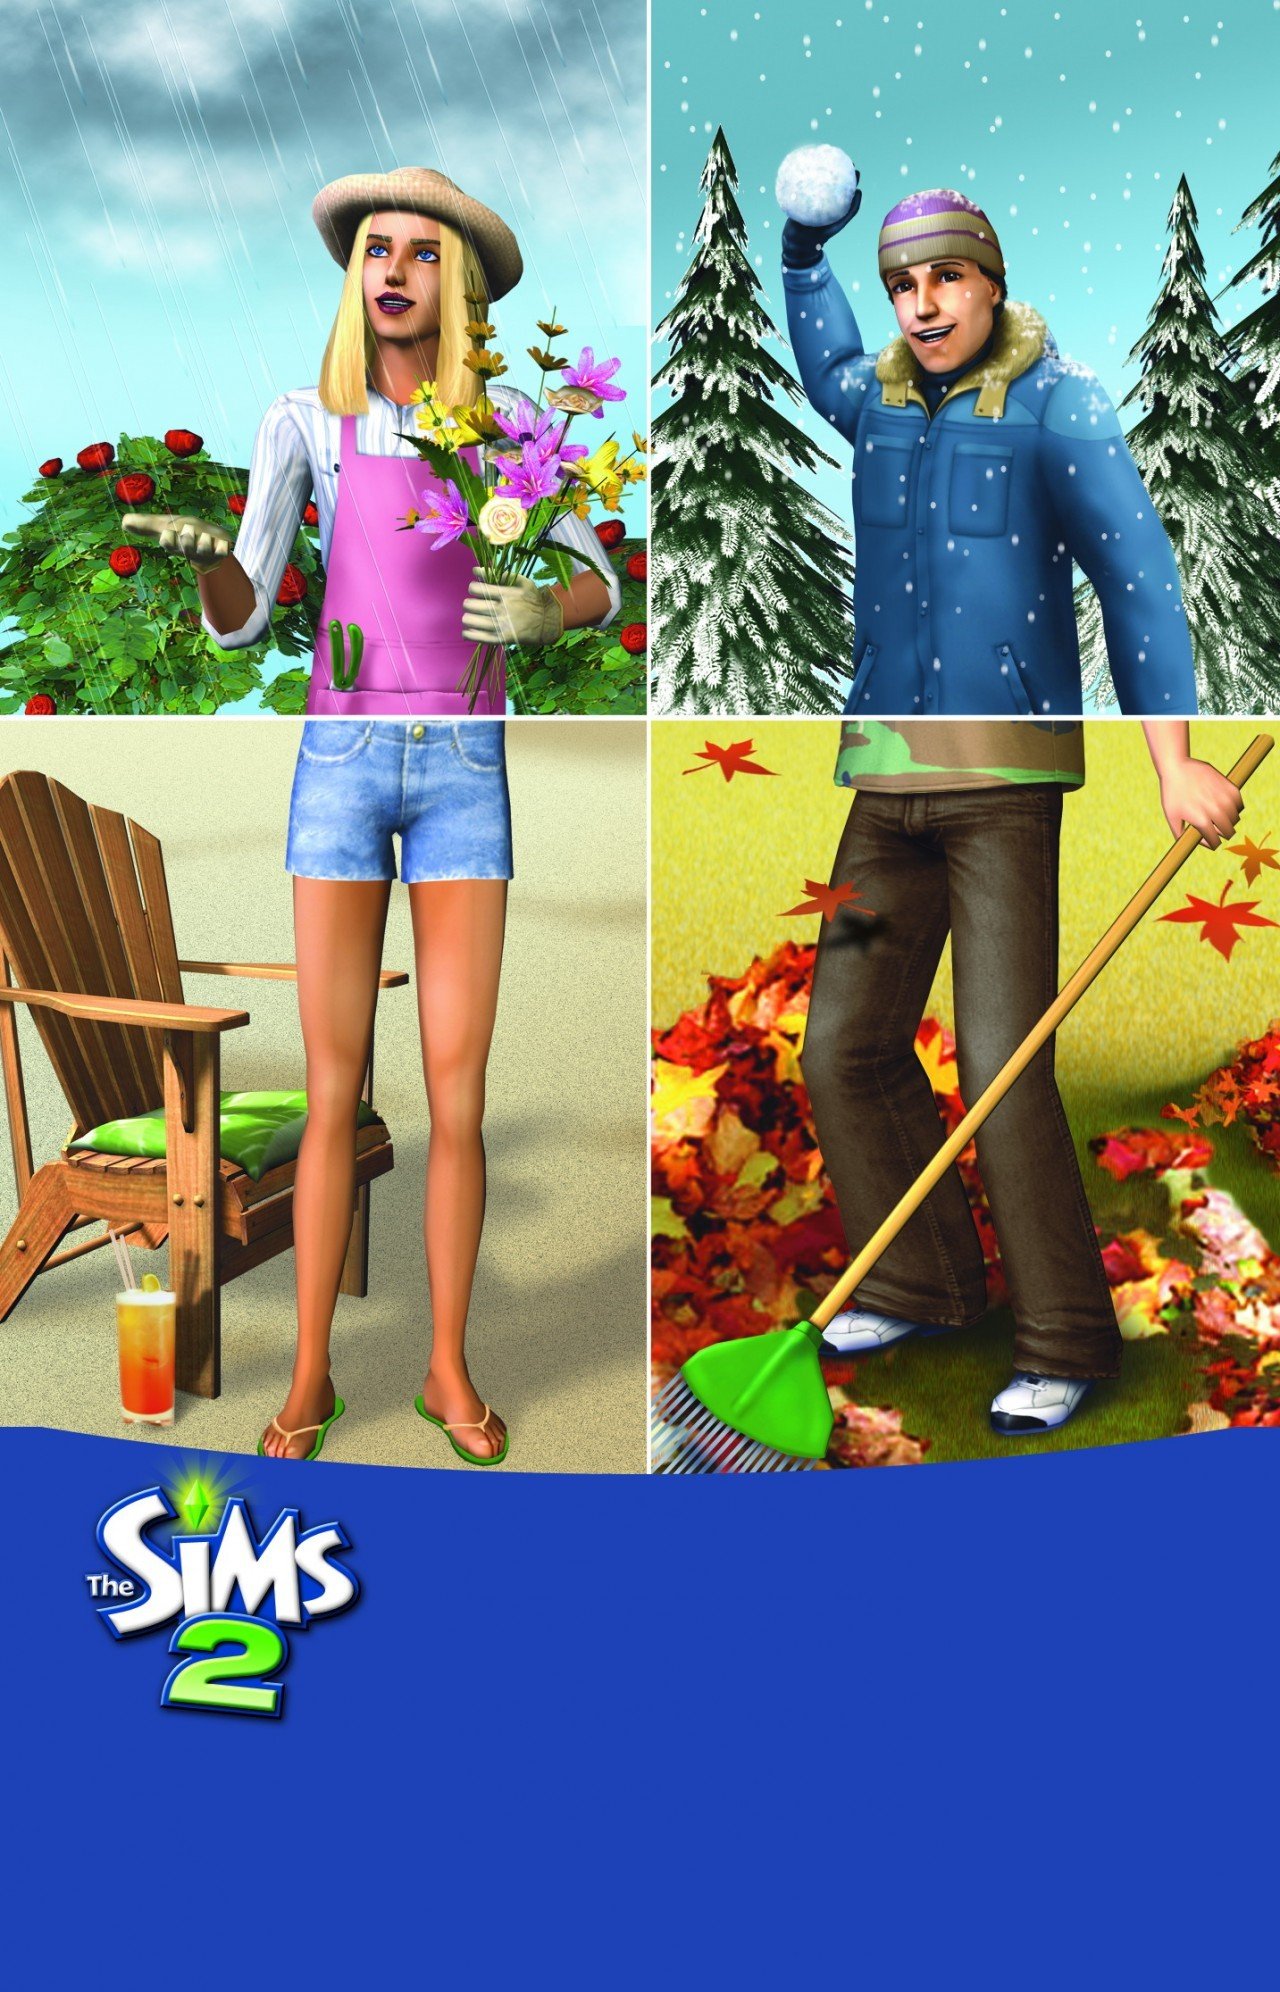 Les Sims 3 Showtime Edition Collector Katy Perry: Test Les Sims 2 : Seasons Sur PC